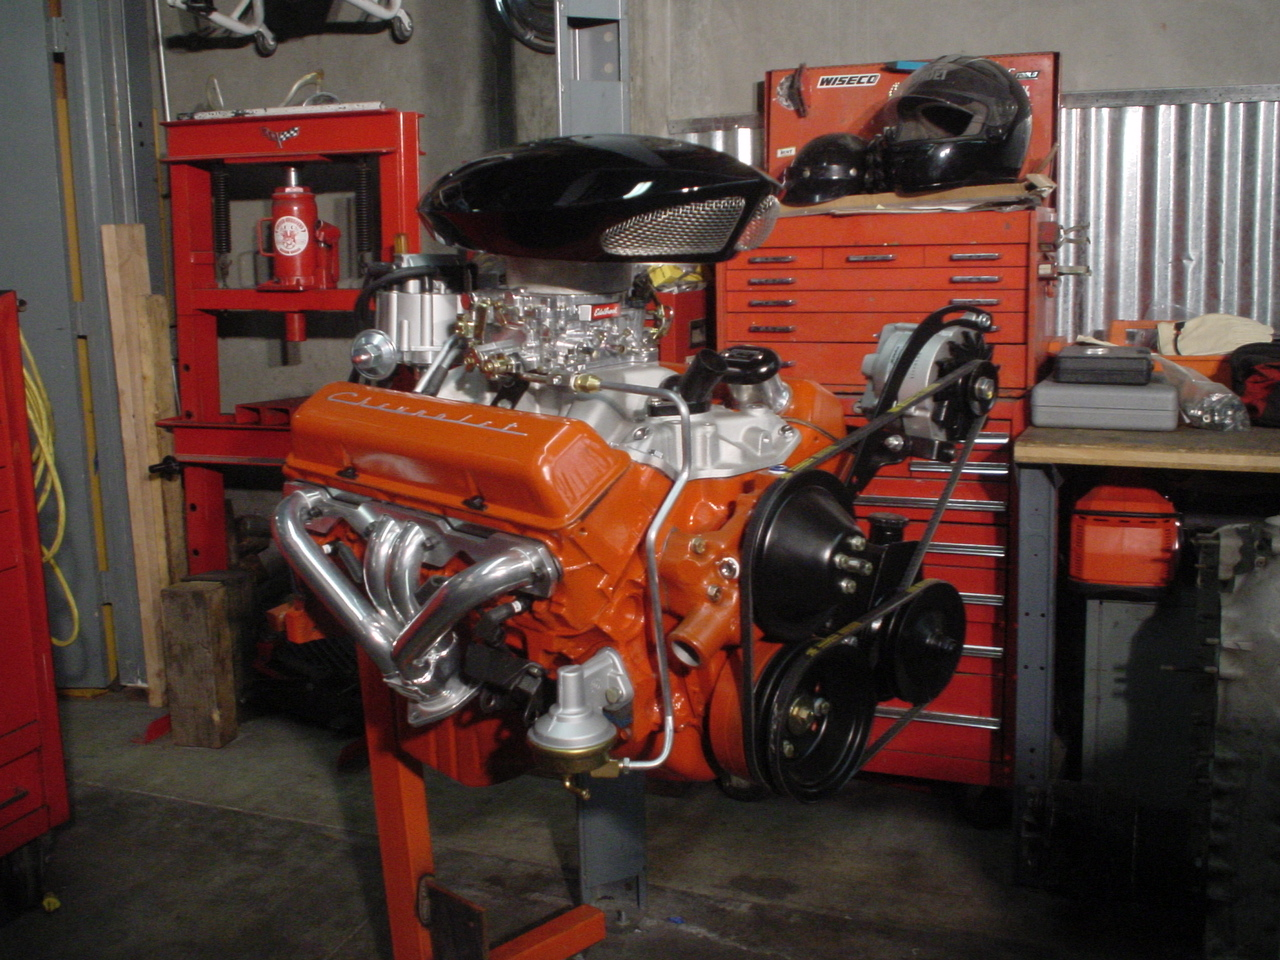 Crate Chevy 350 engine